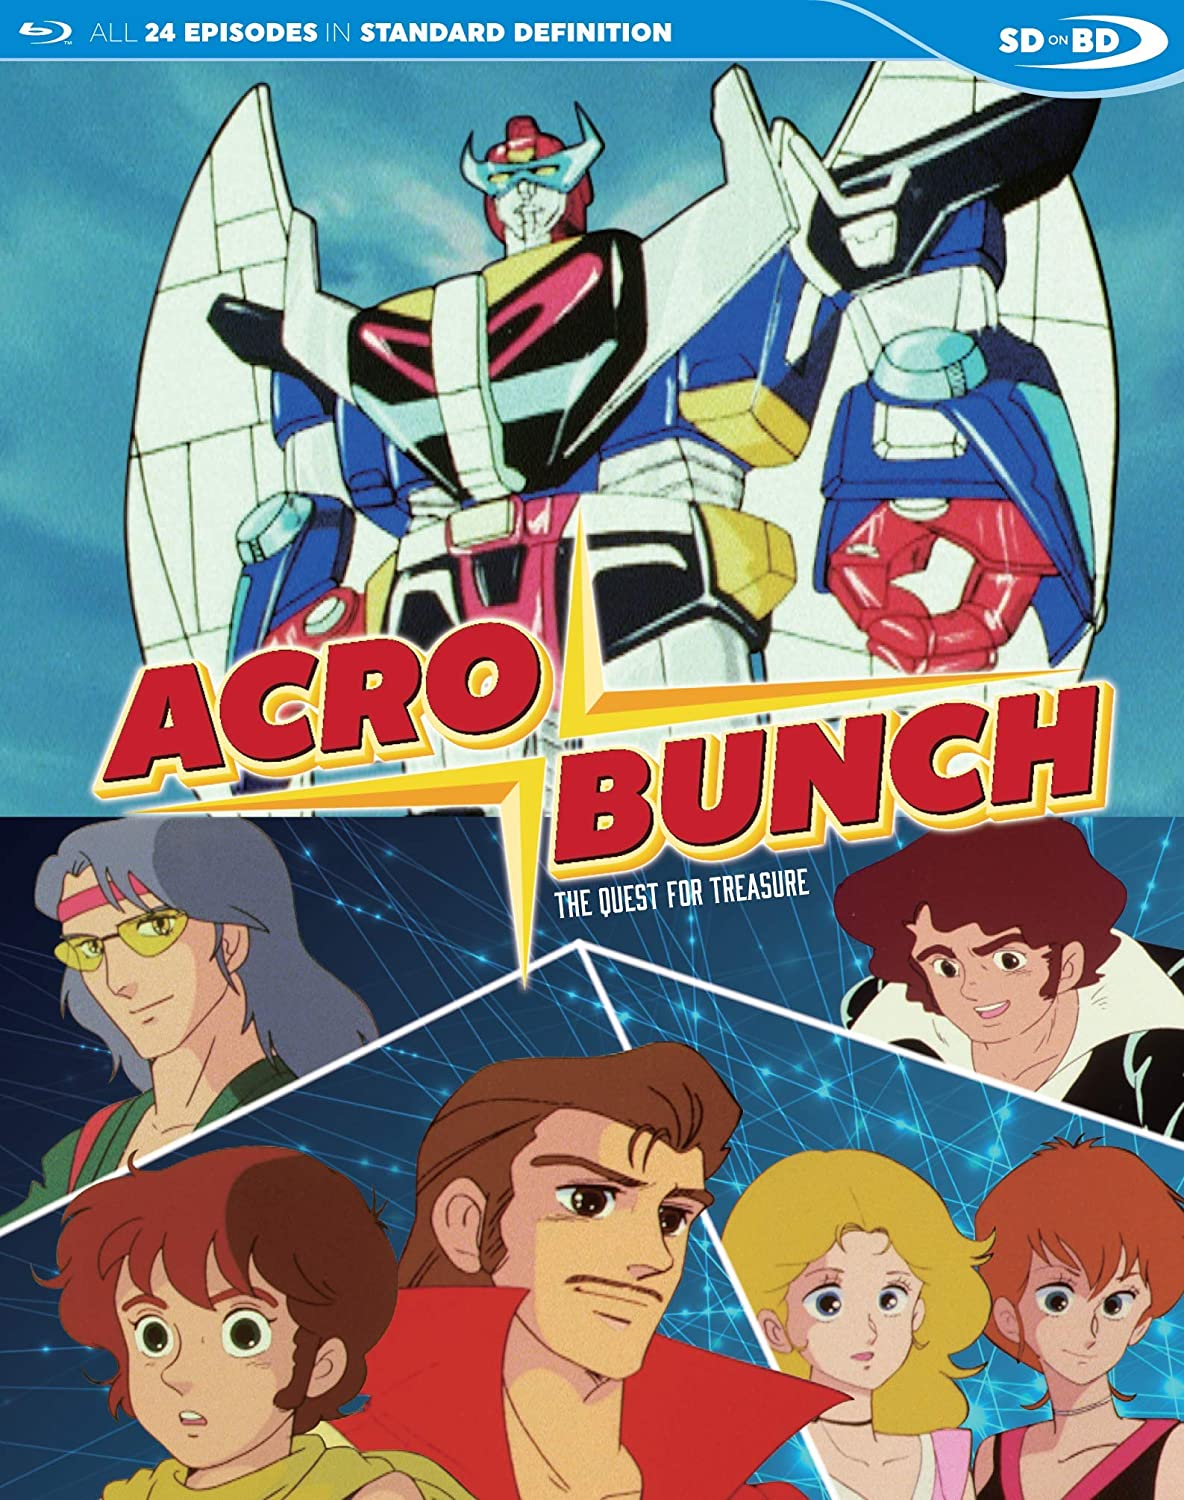 Acrobunch Blu-ray (Sub Only)